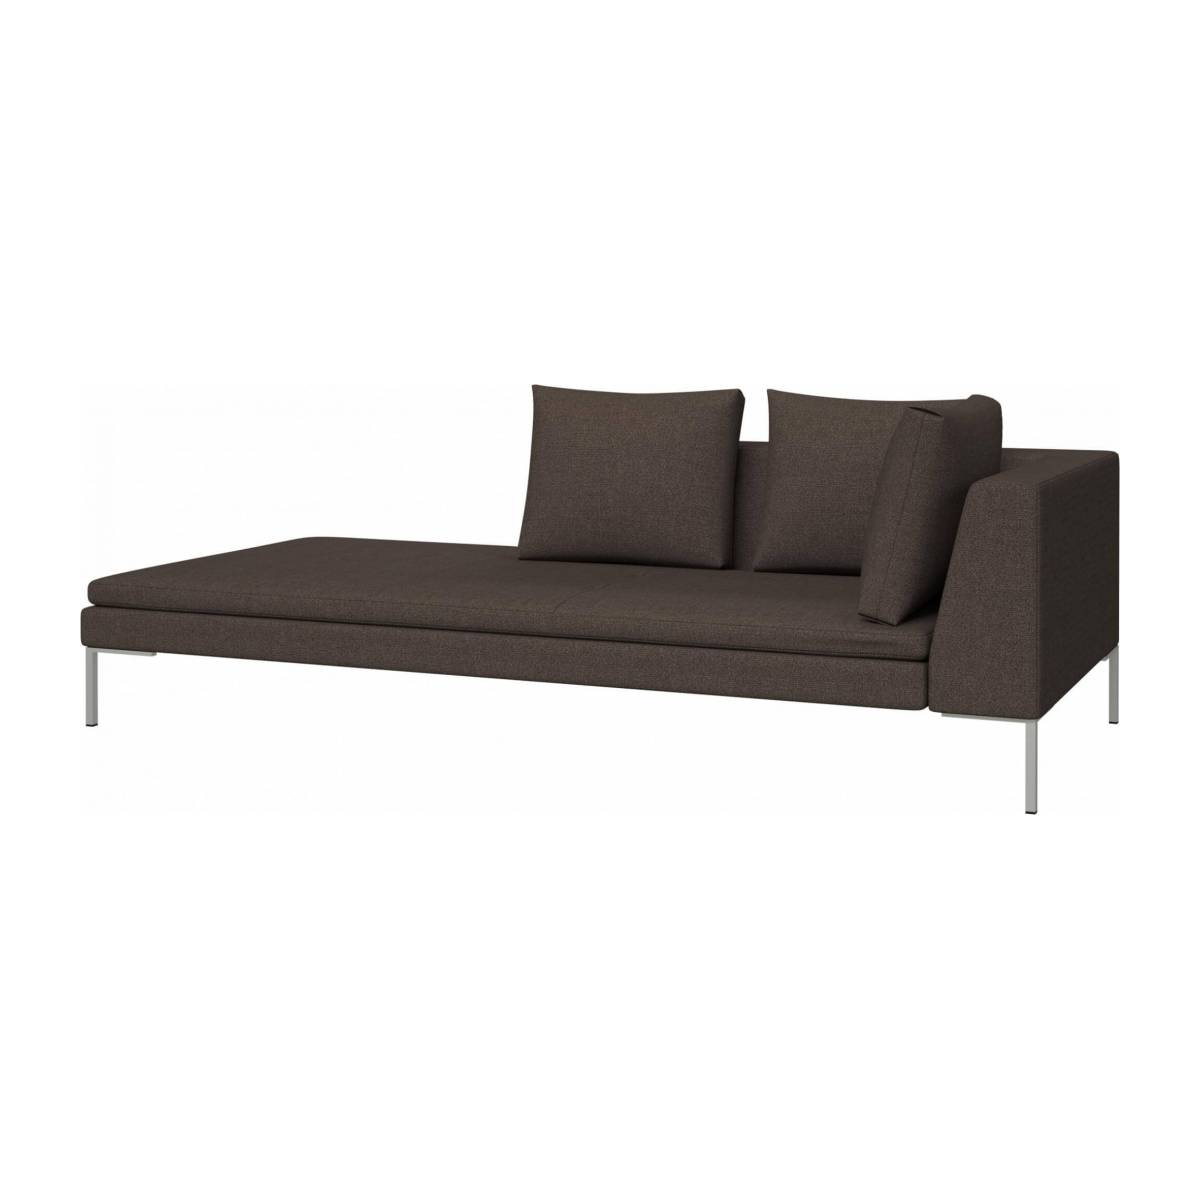 Chaiselongue, links aus Lecce-Stoff - Braun n°2